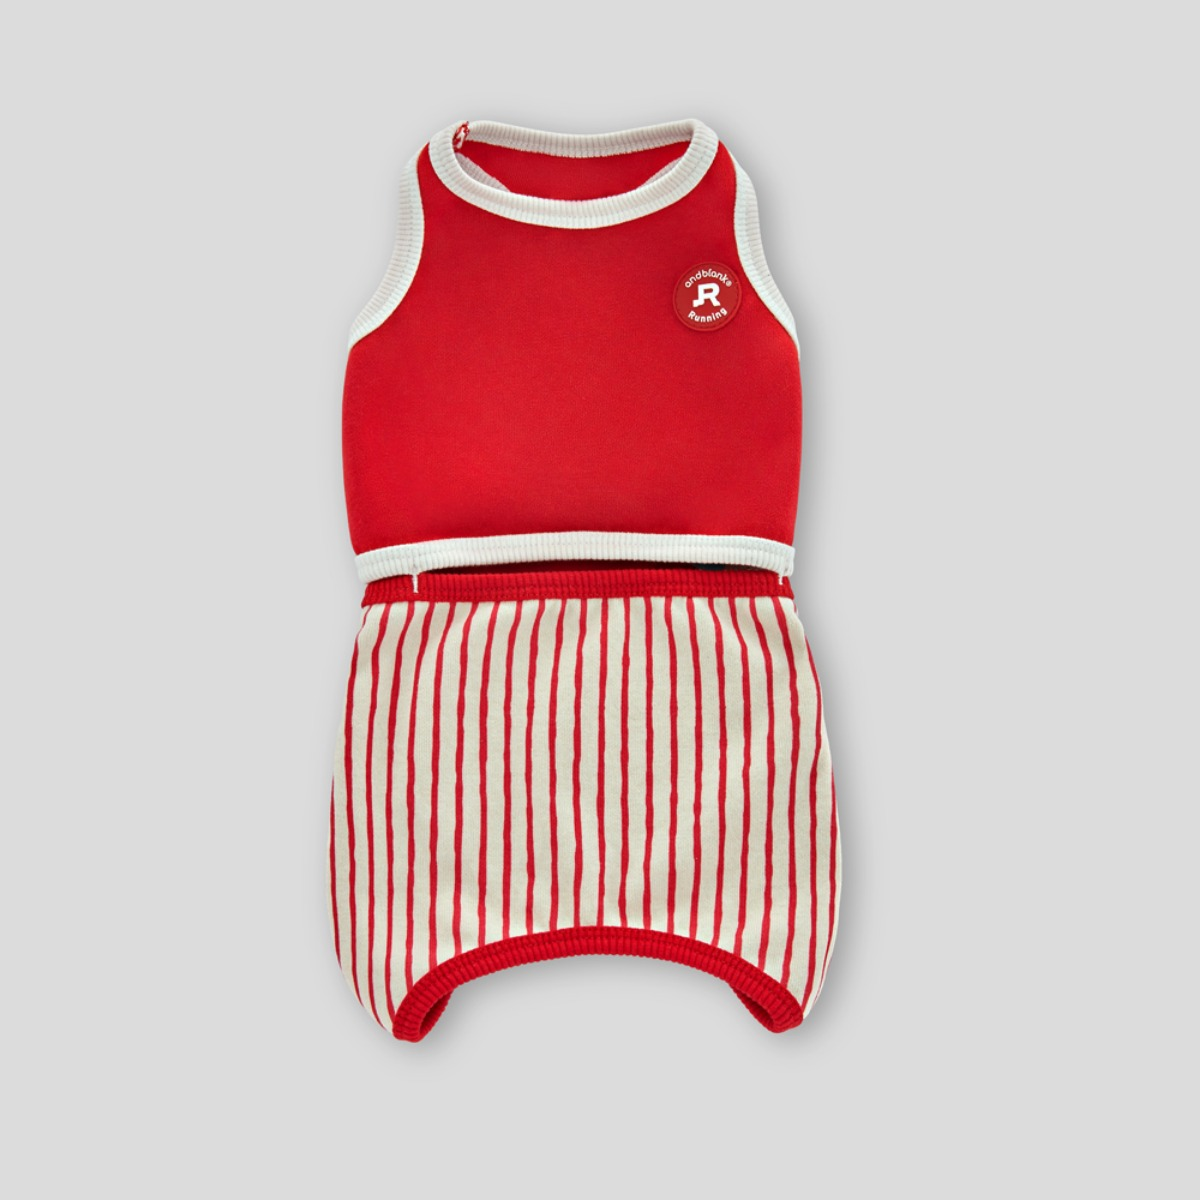 [andblank] STRIPES, ROMPER : RED